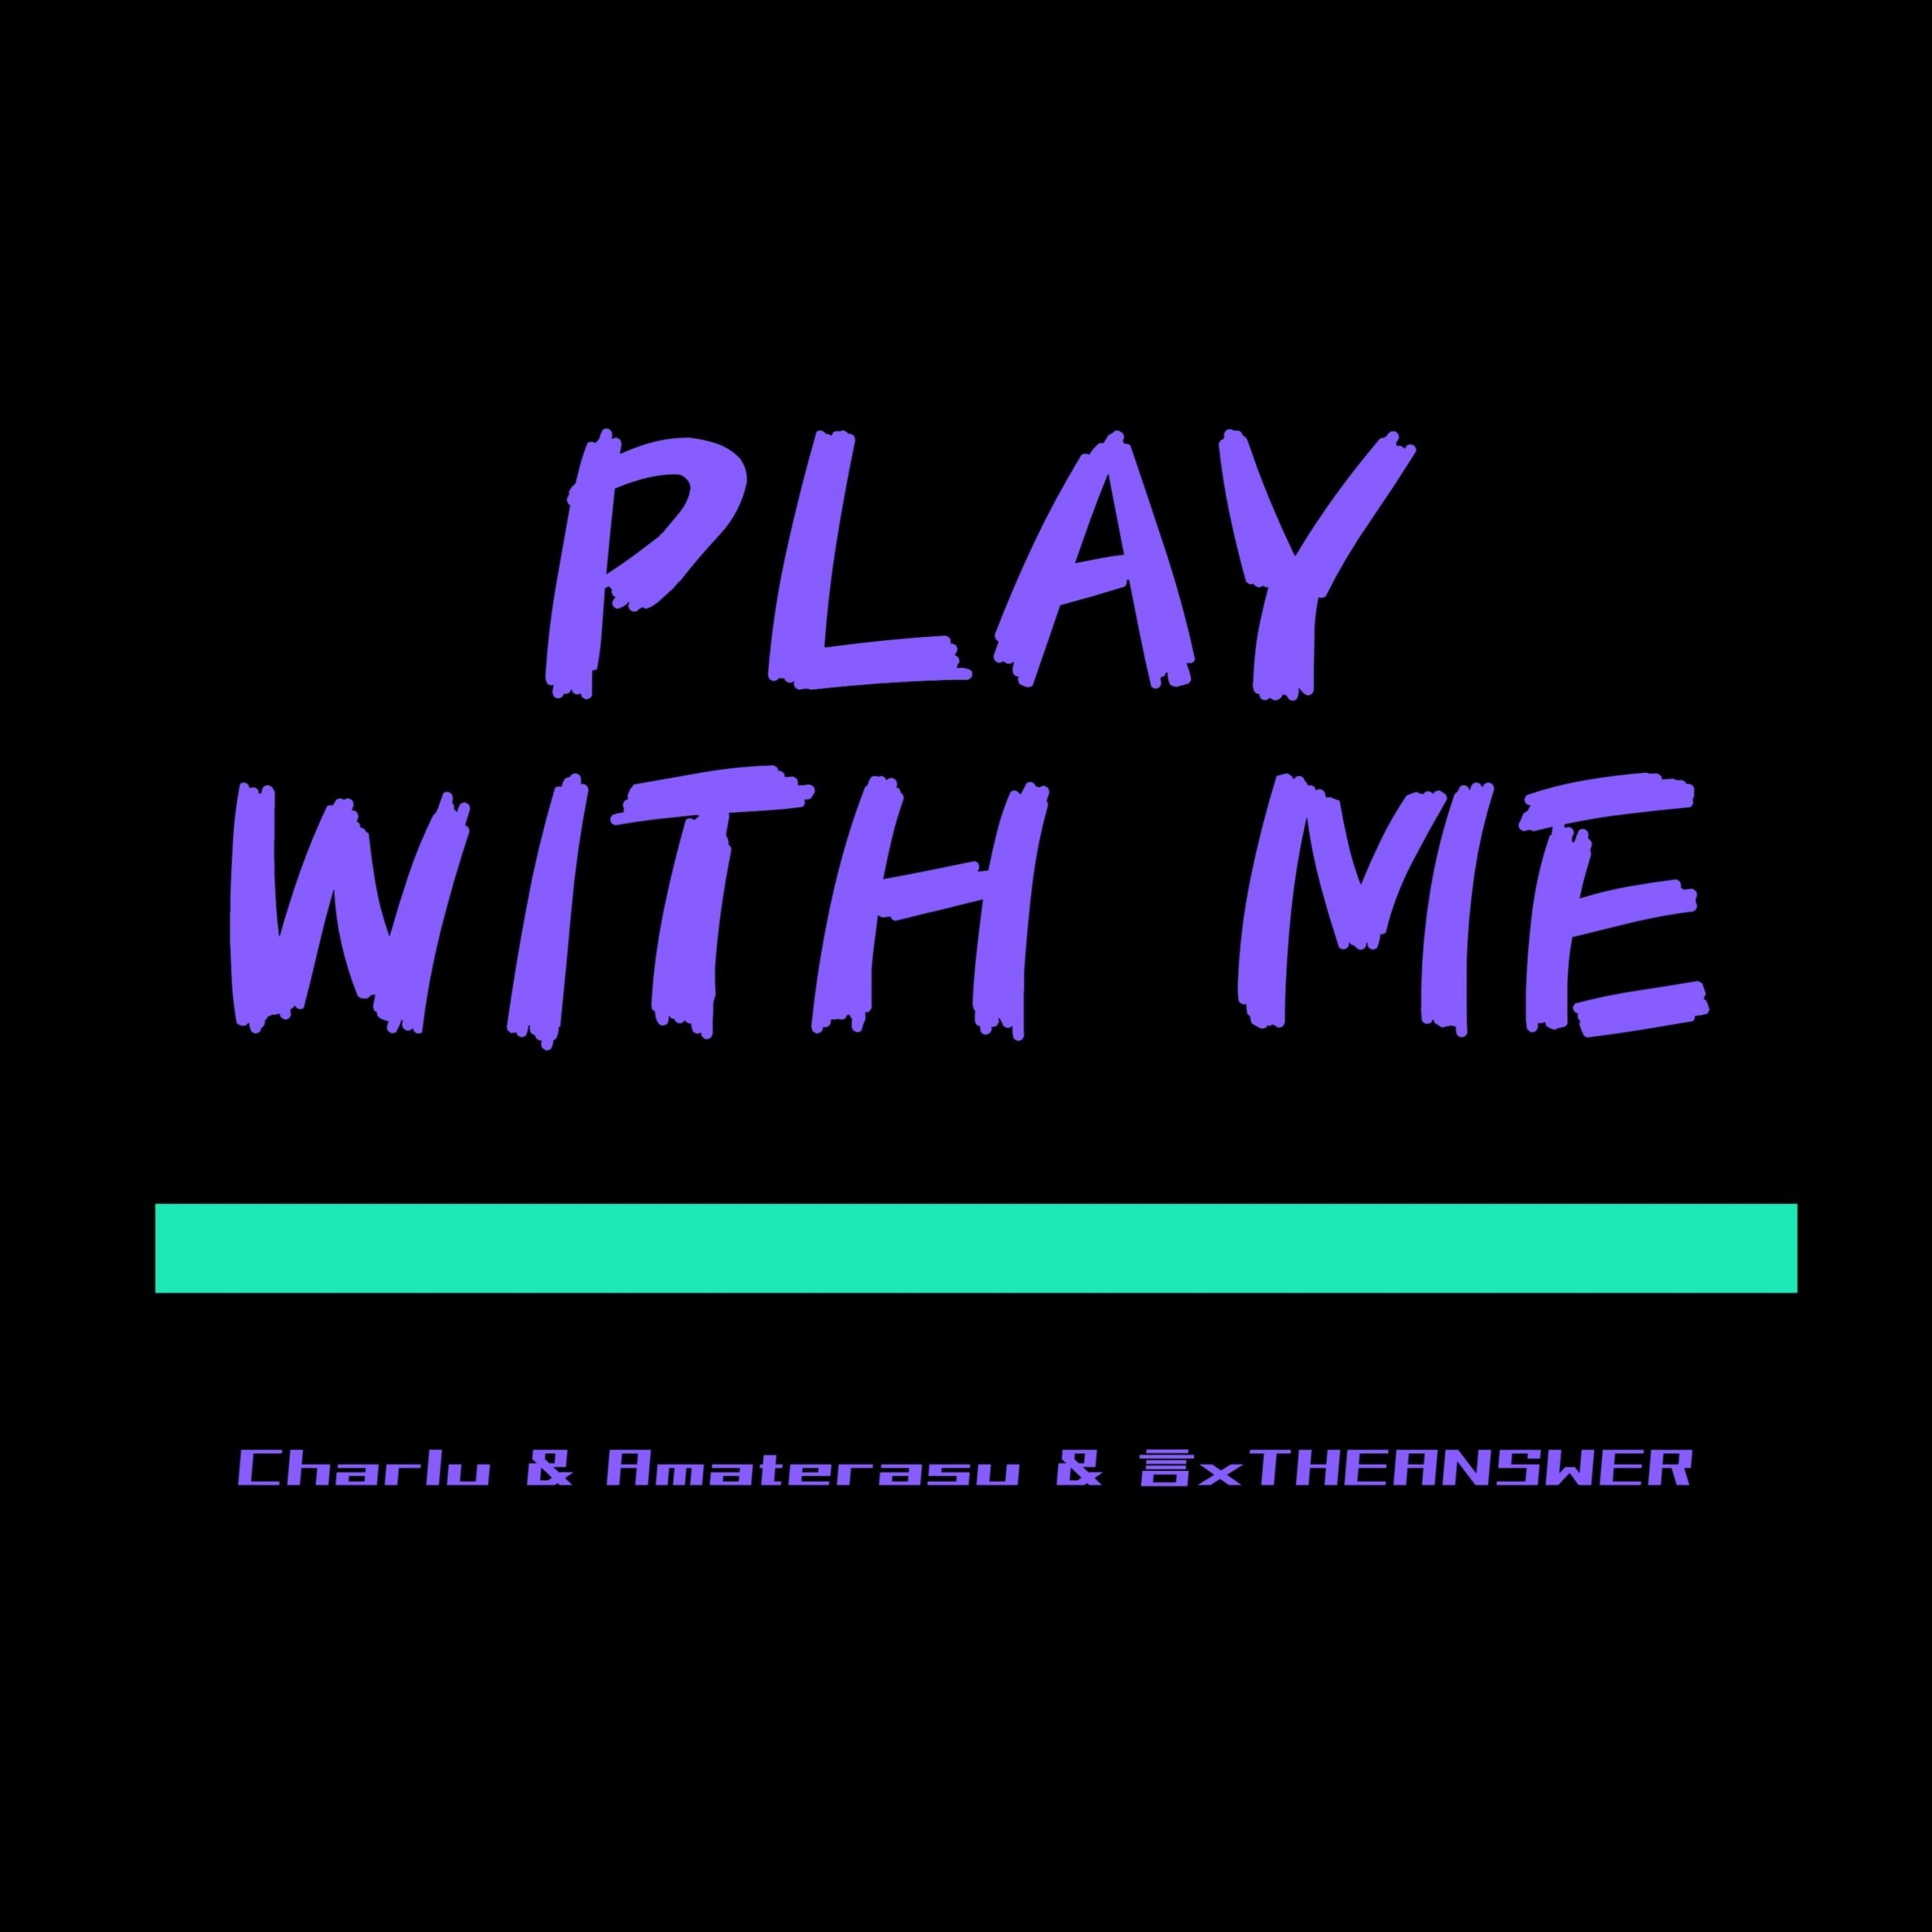 PLAY WITH ME - Charlu & Amateras & 言xTHEANSWER